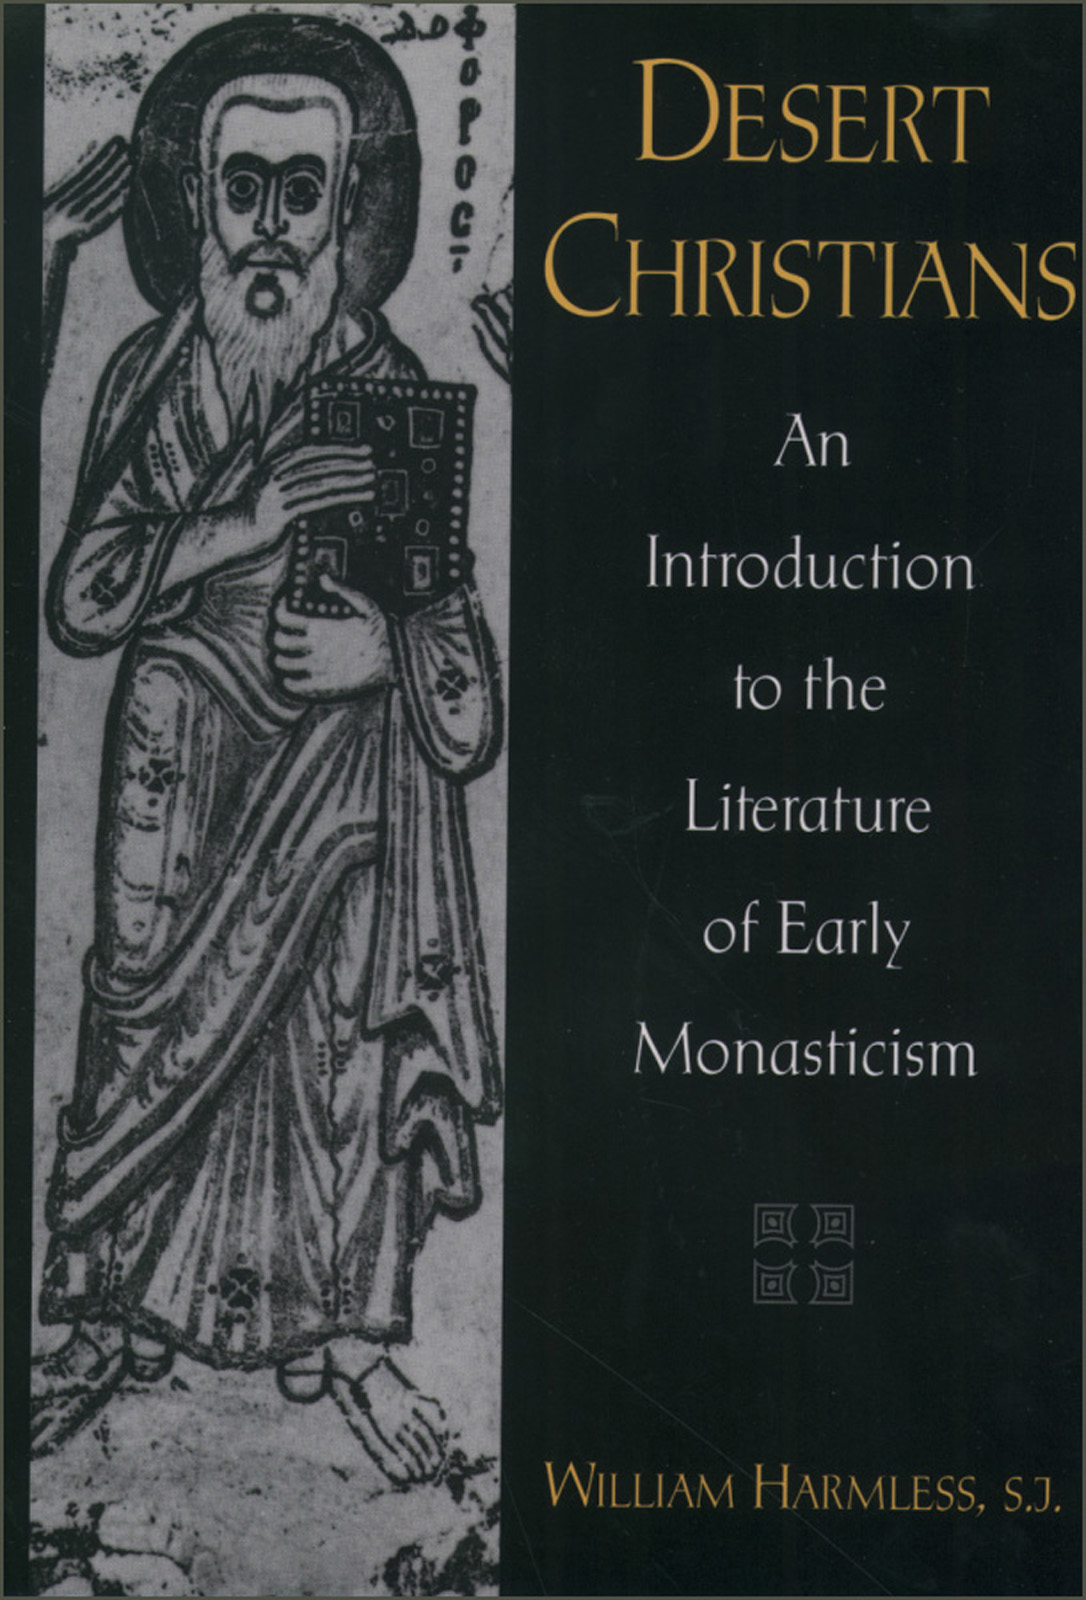 Desert Christians:An Introduction to the Literature of Early Monasticism  By: William Harmless